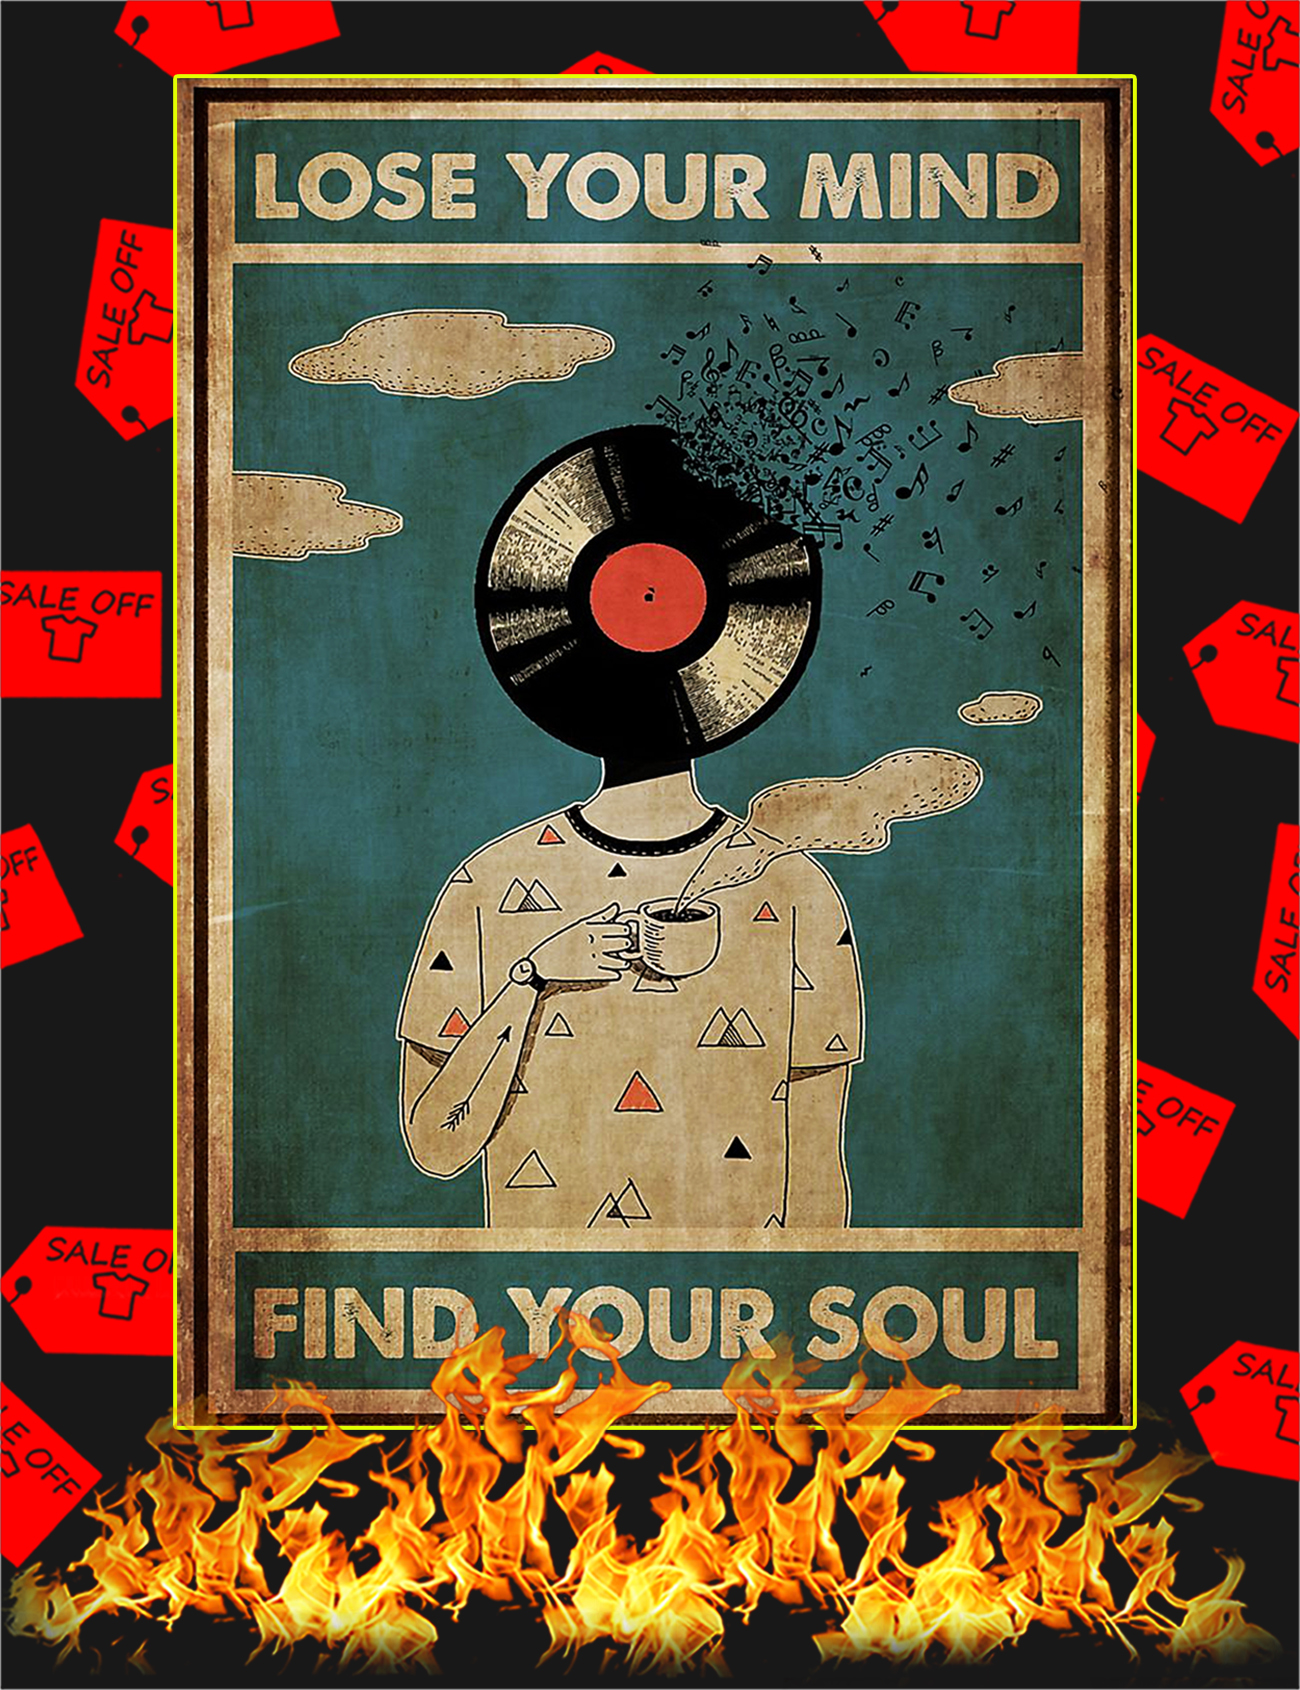 DJ lose your mind find your soul poster - A1